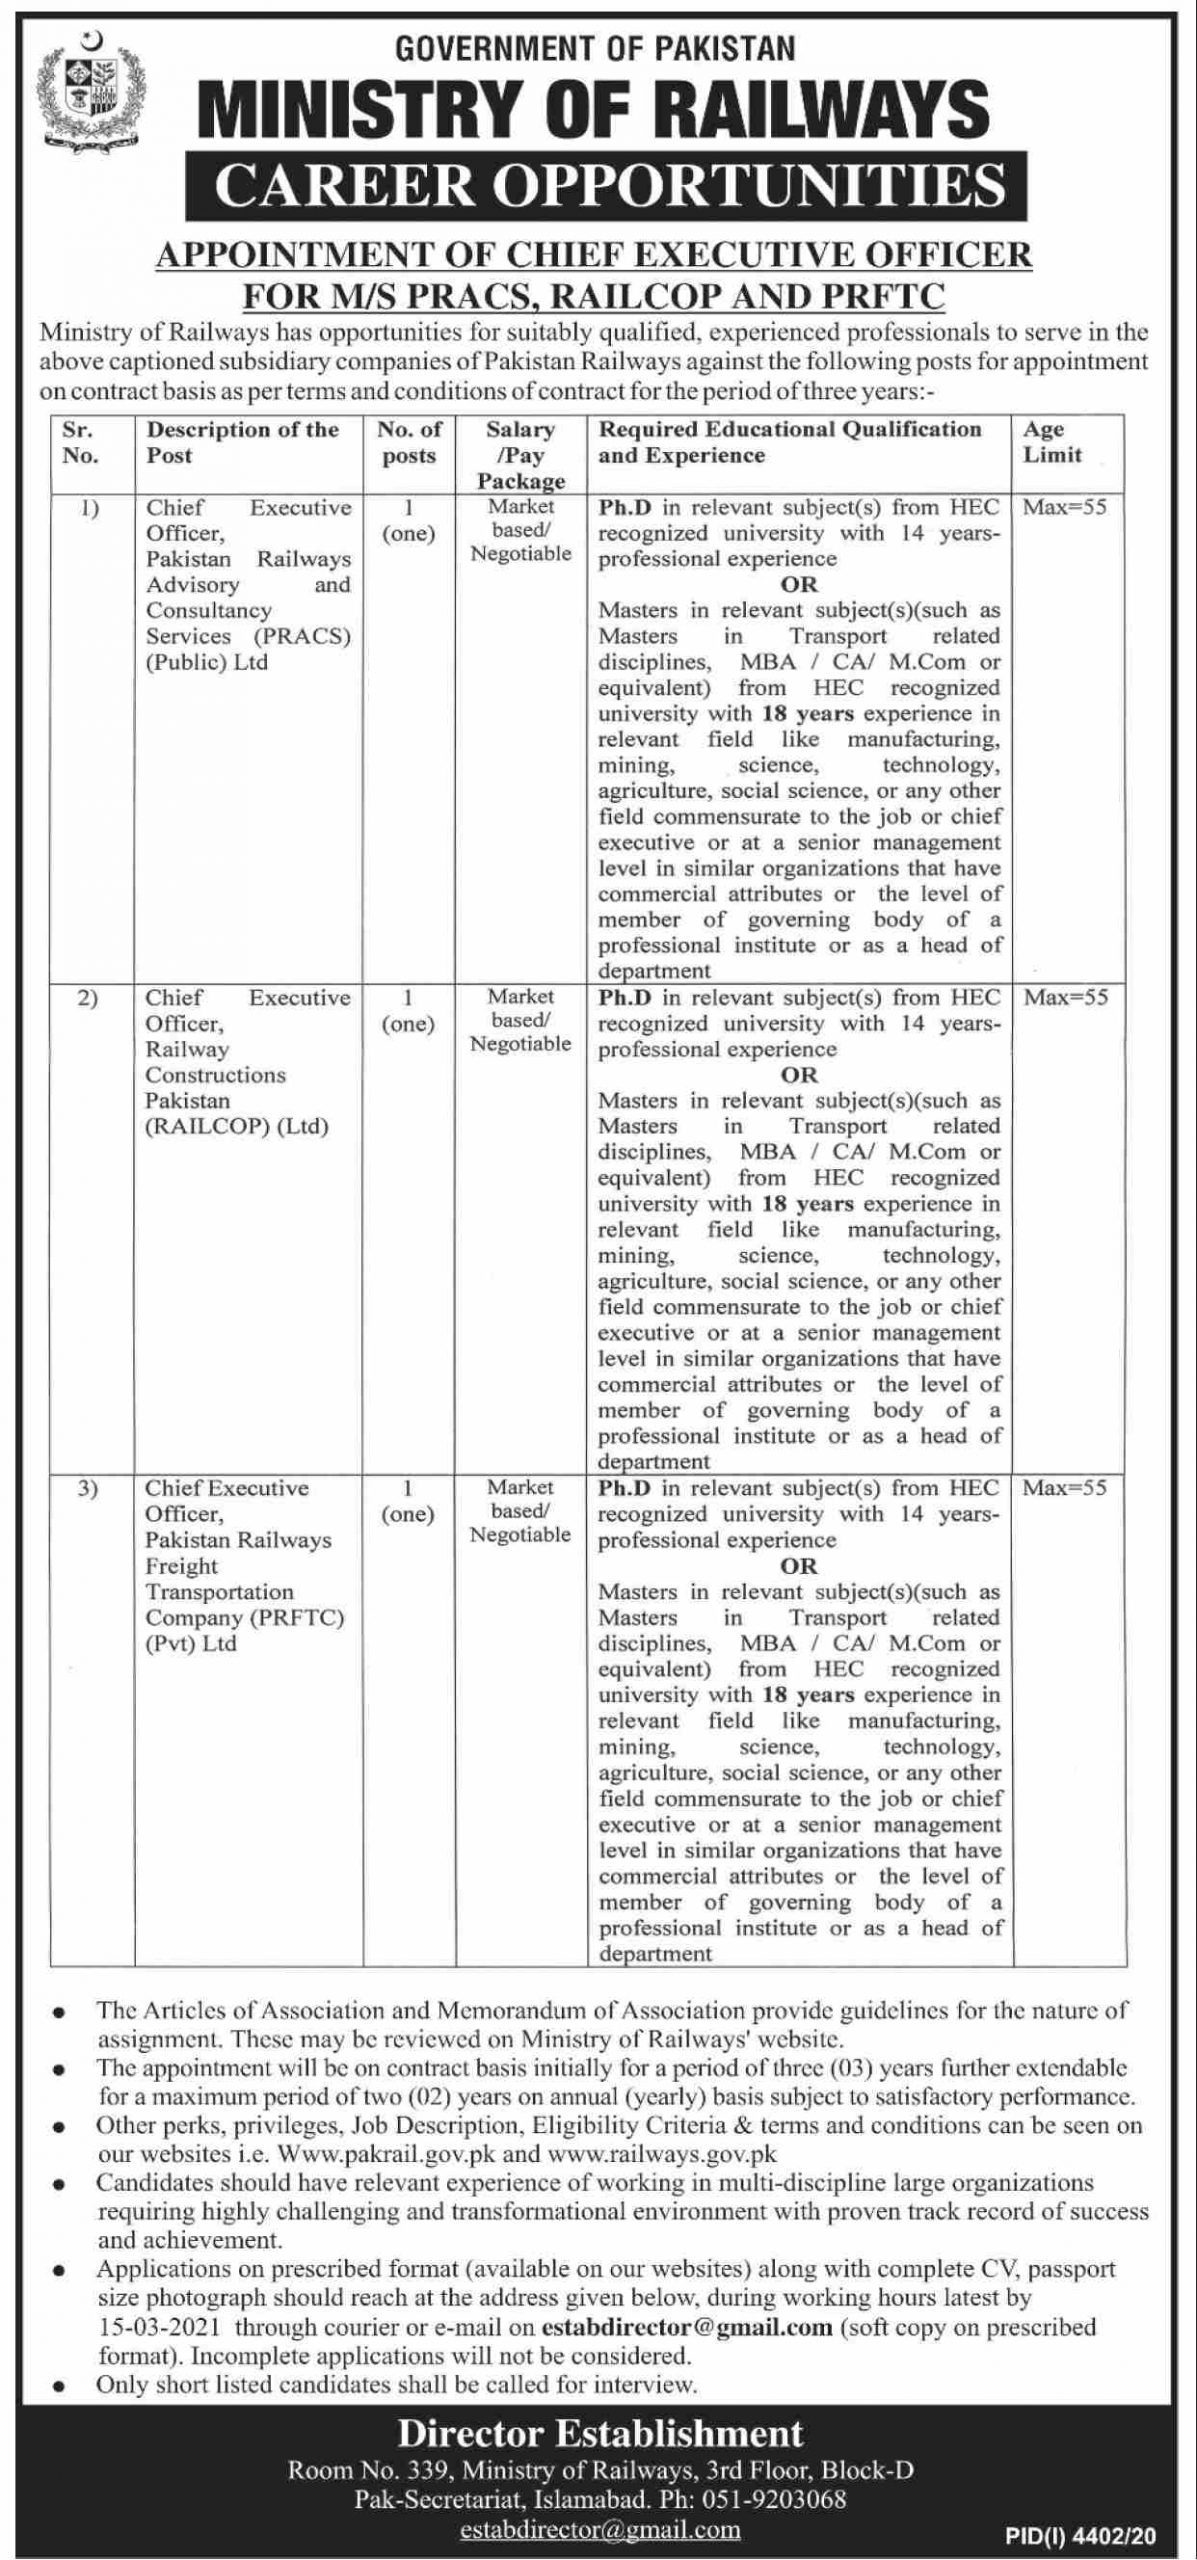 Ministry of Railways Government of Pakistan Jobs February 2021